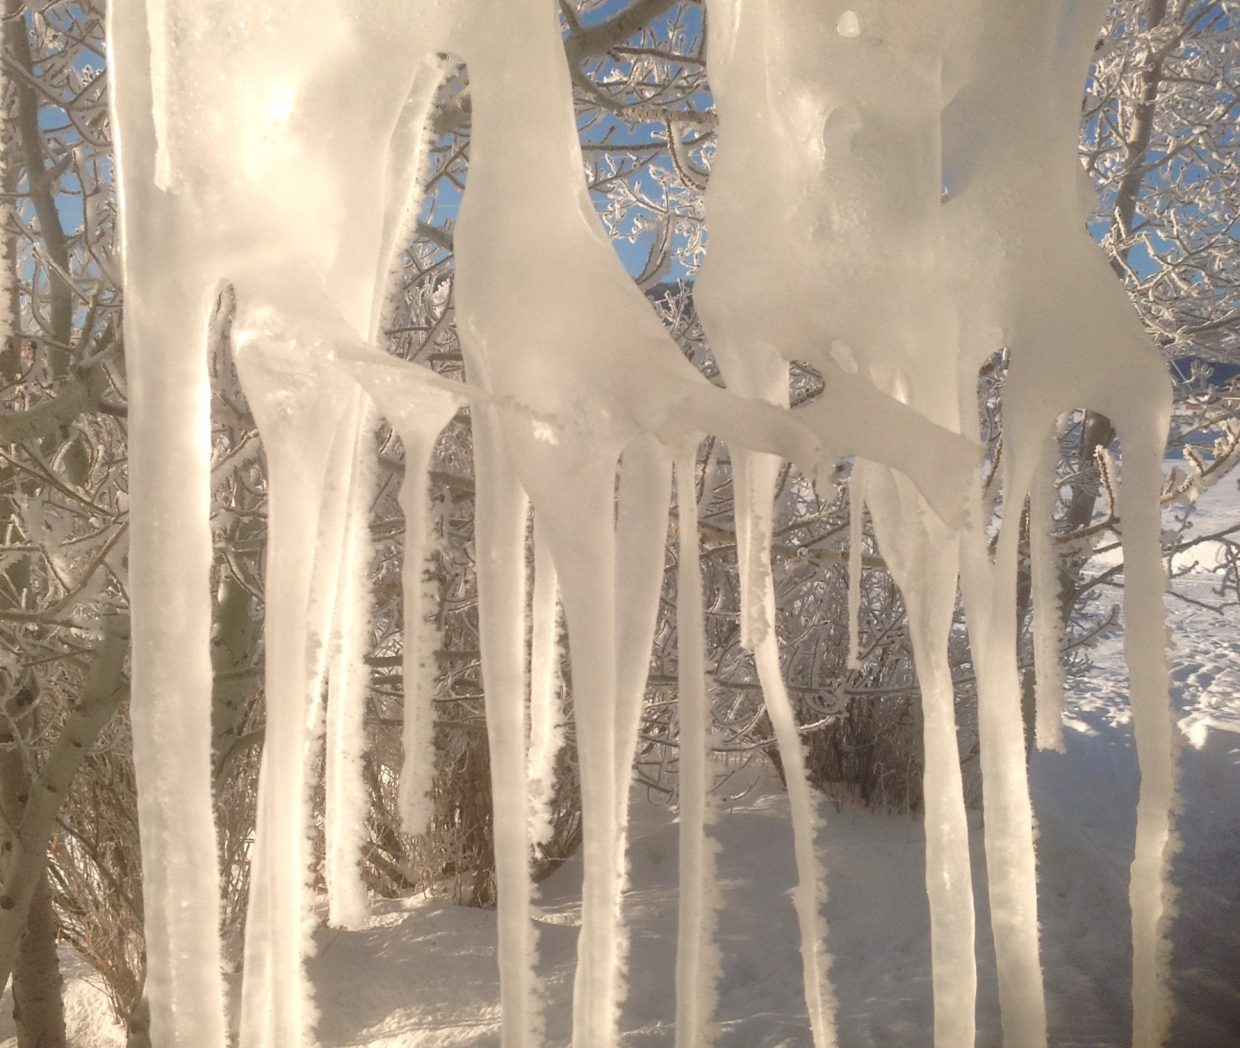 Winter nights & sunny days makes cool ice formations.